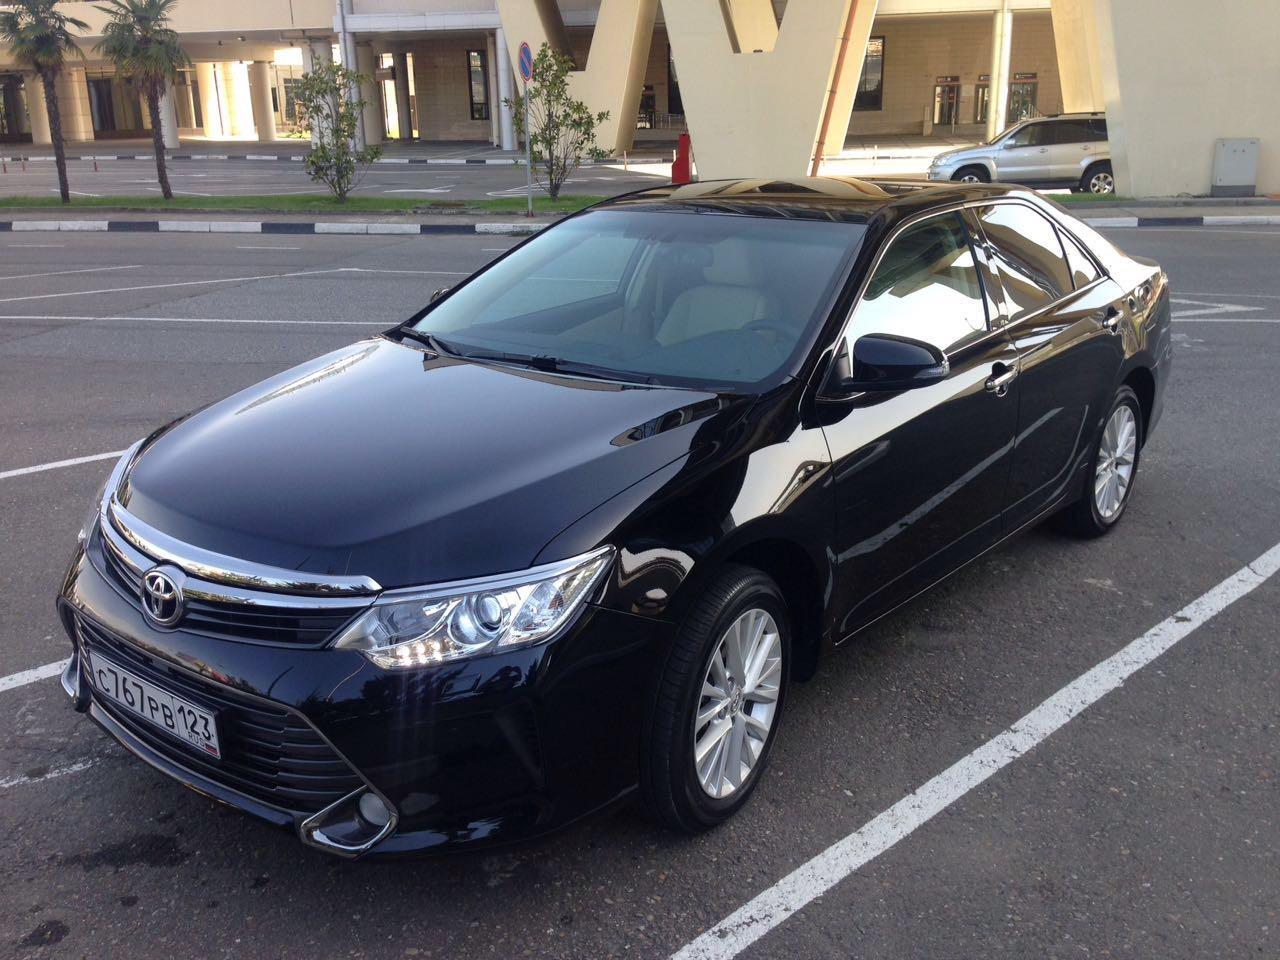 Седан Toyota Camry Prominent - #1